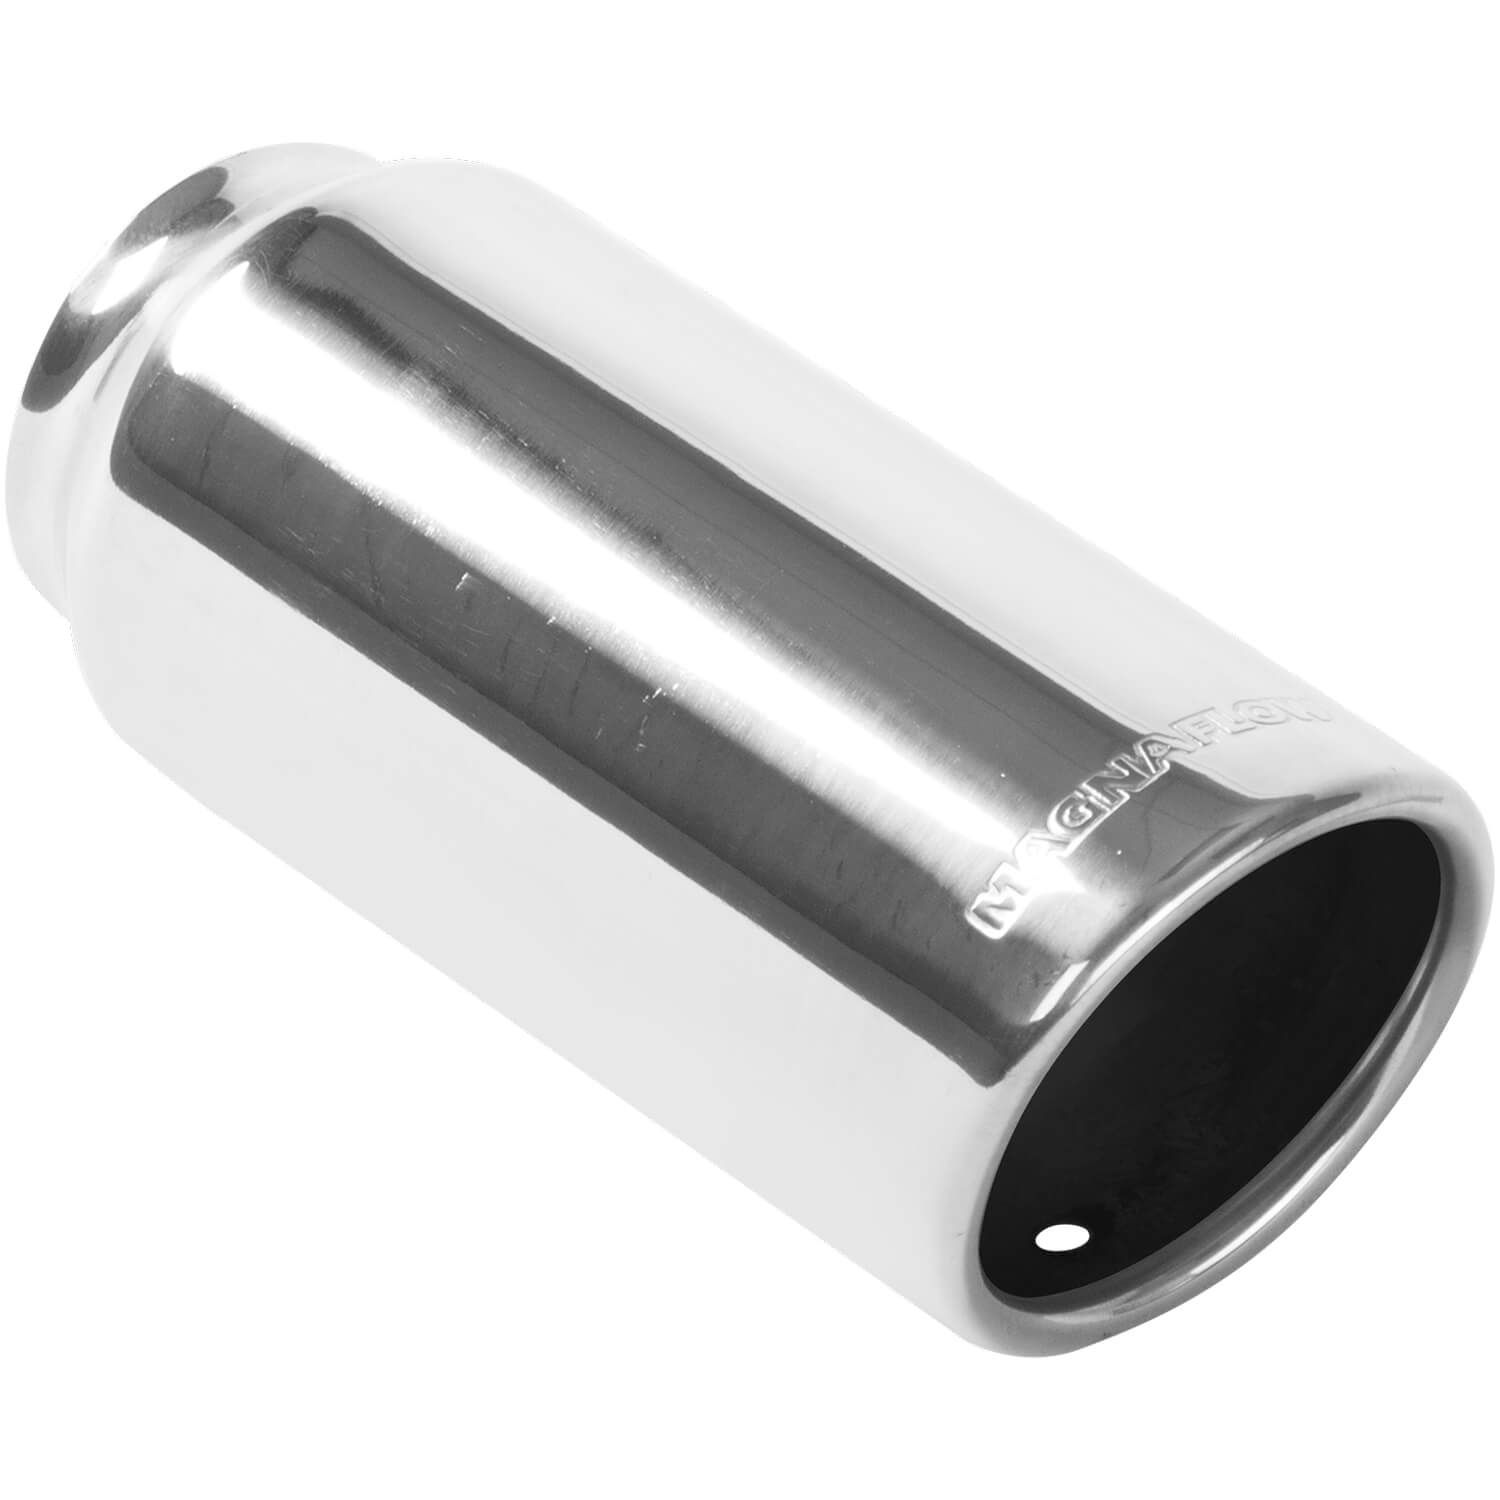 Magnaflow 35131 - Magnaflow Polished Stainless Steel Weld-On Single Exhaust Tips